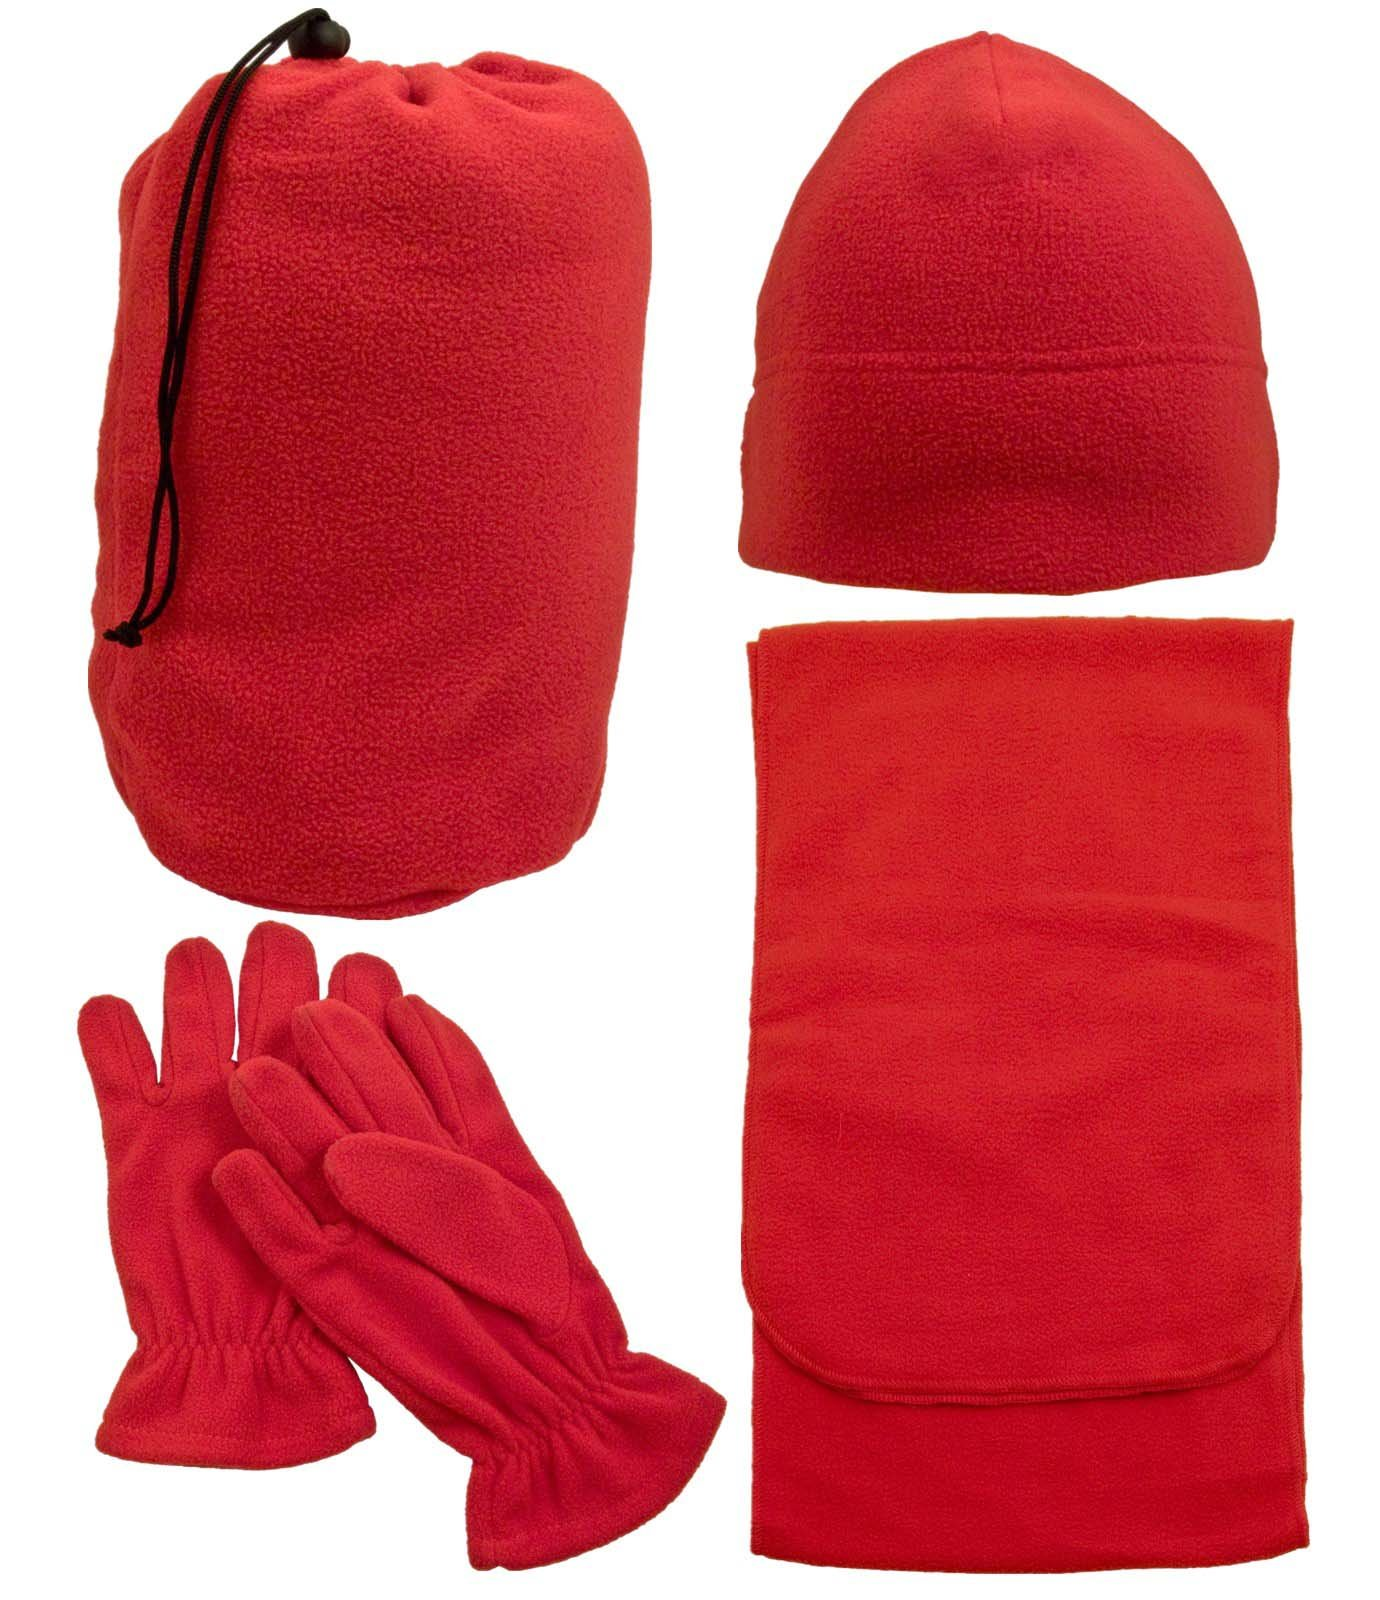 Men & Women's 3 Piece Winter Set - Beanie Hat, Scarf, & Gloves , Red